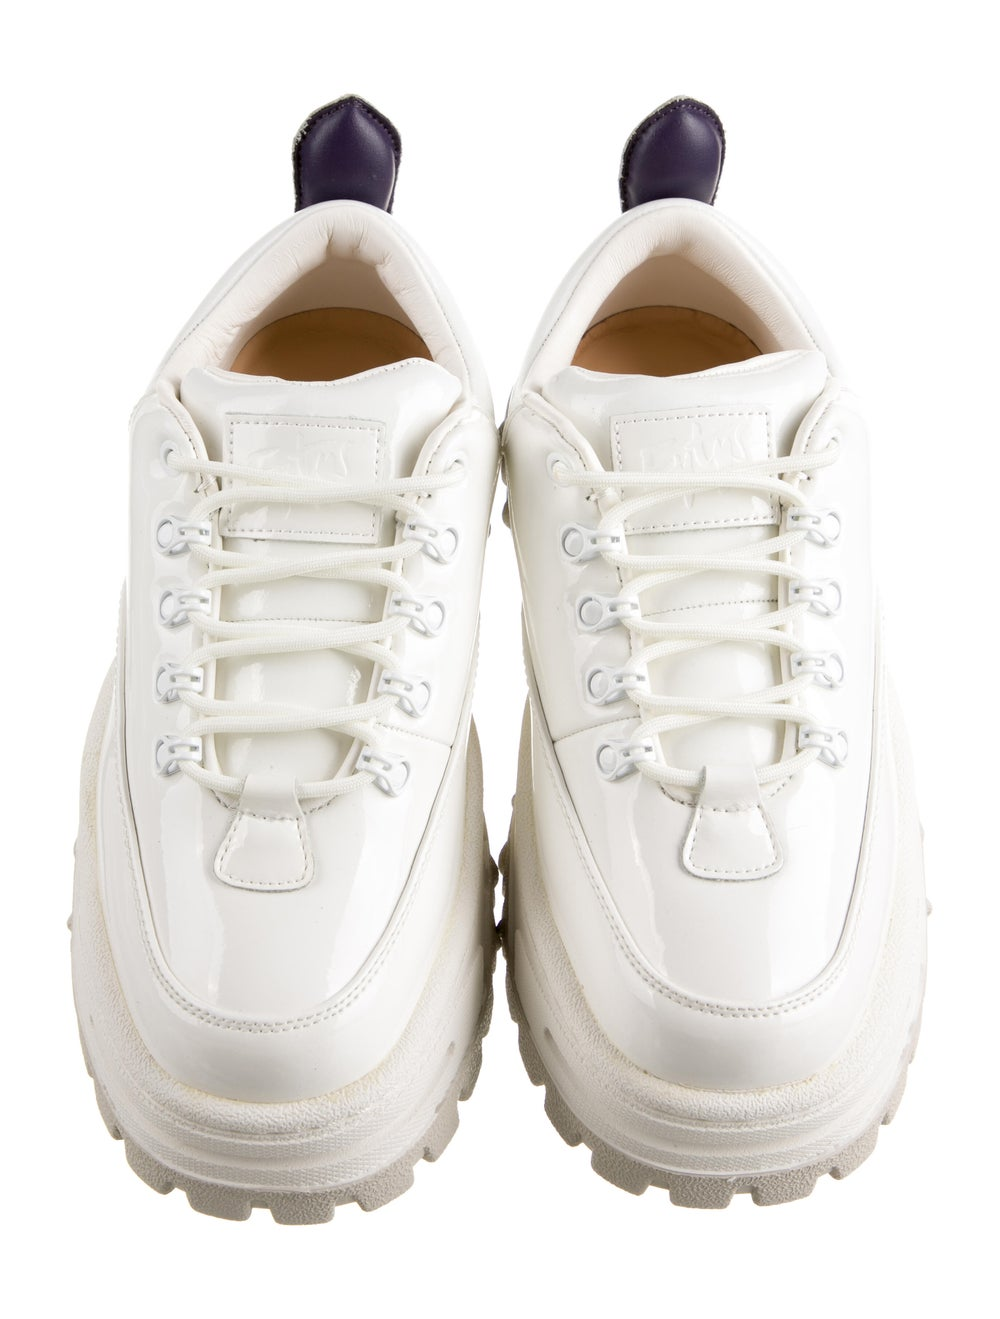 Eytys Leather Chunky Sneakers White - image 3